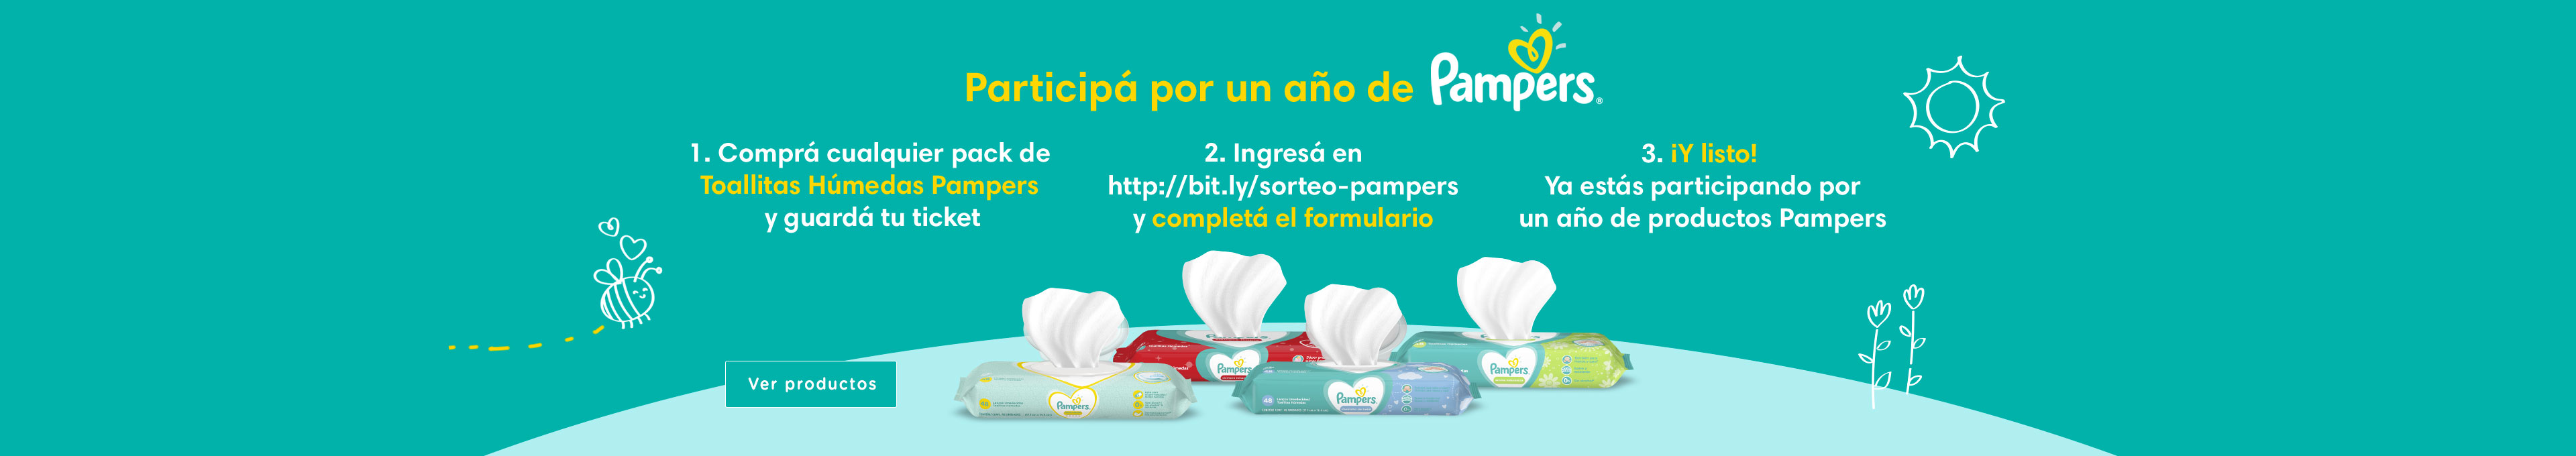 P&G Sorteo Pampers NewHome